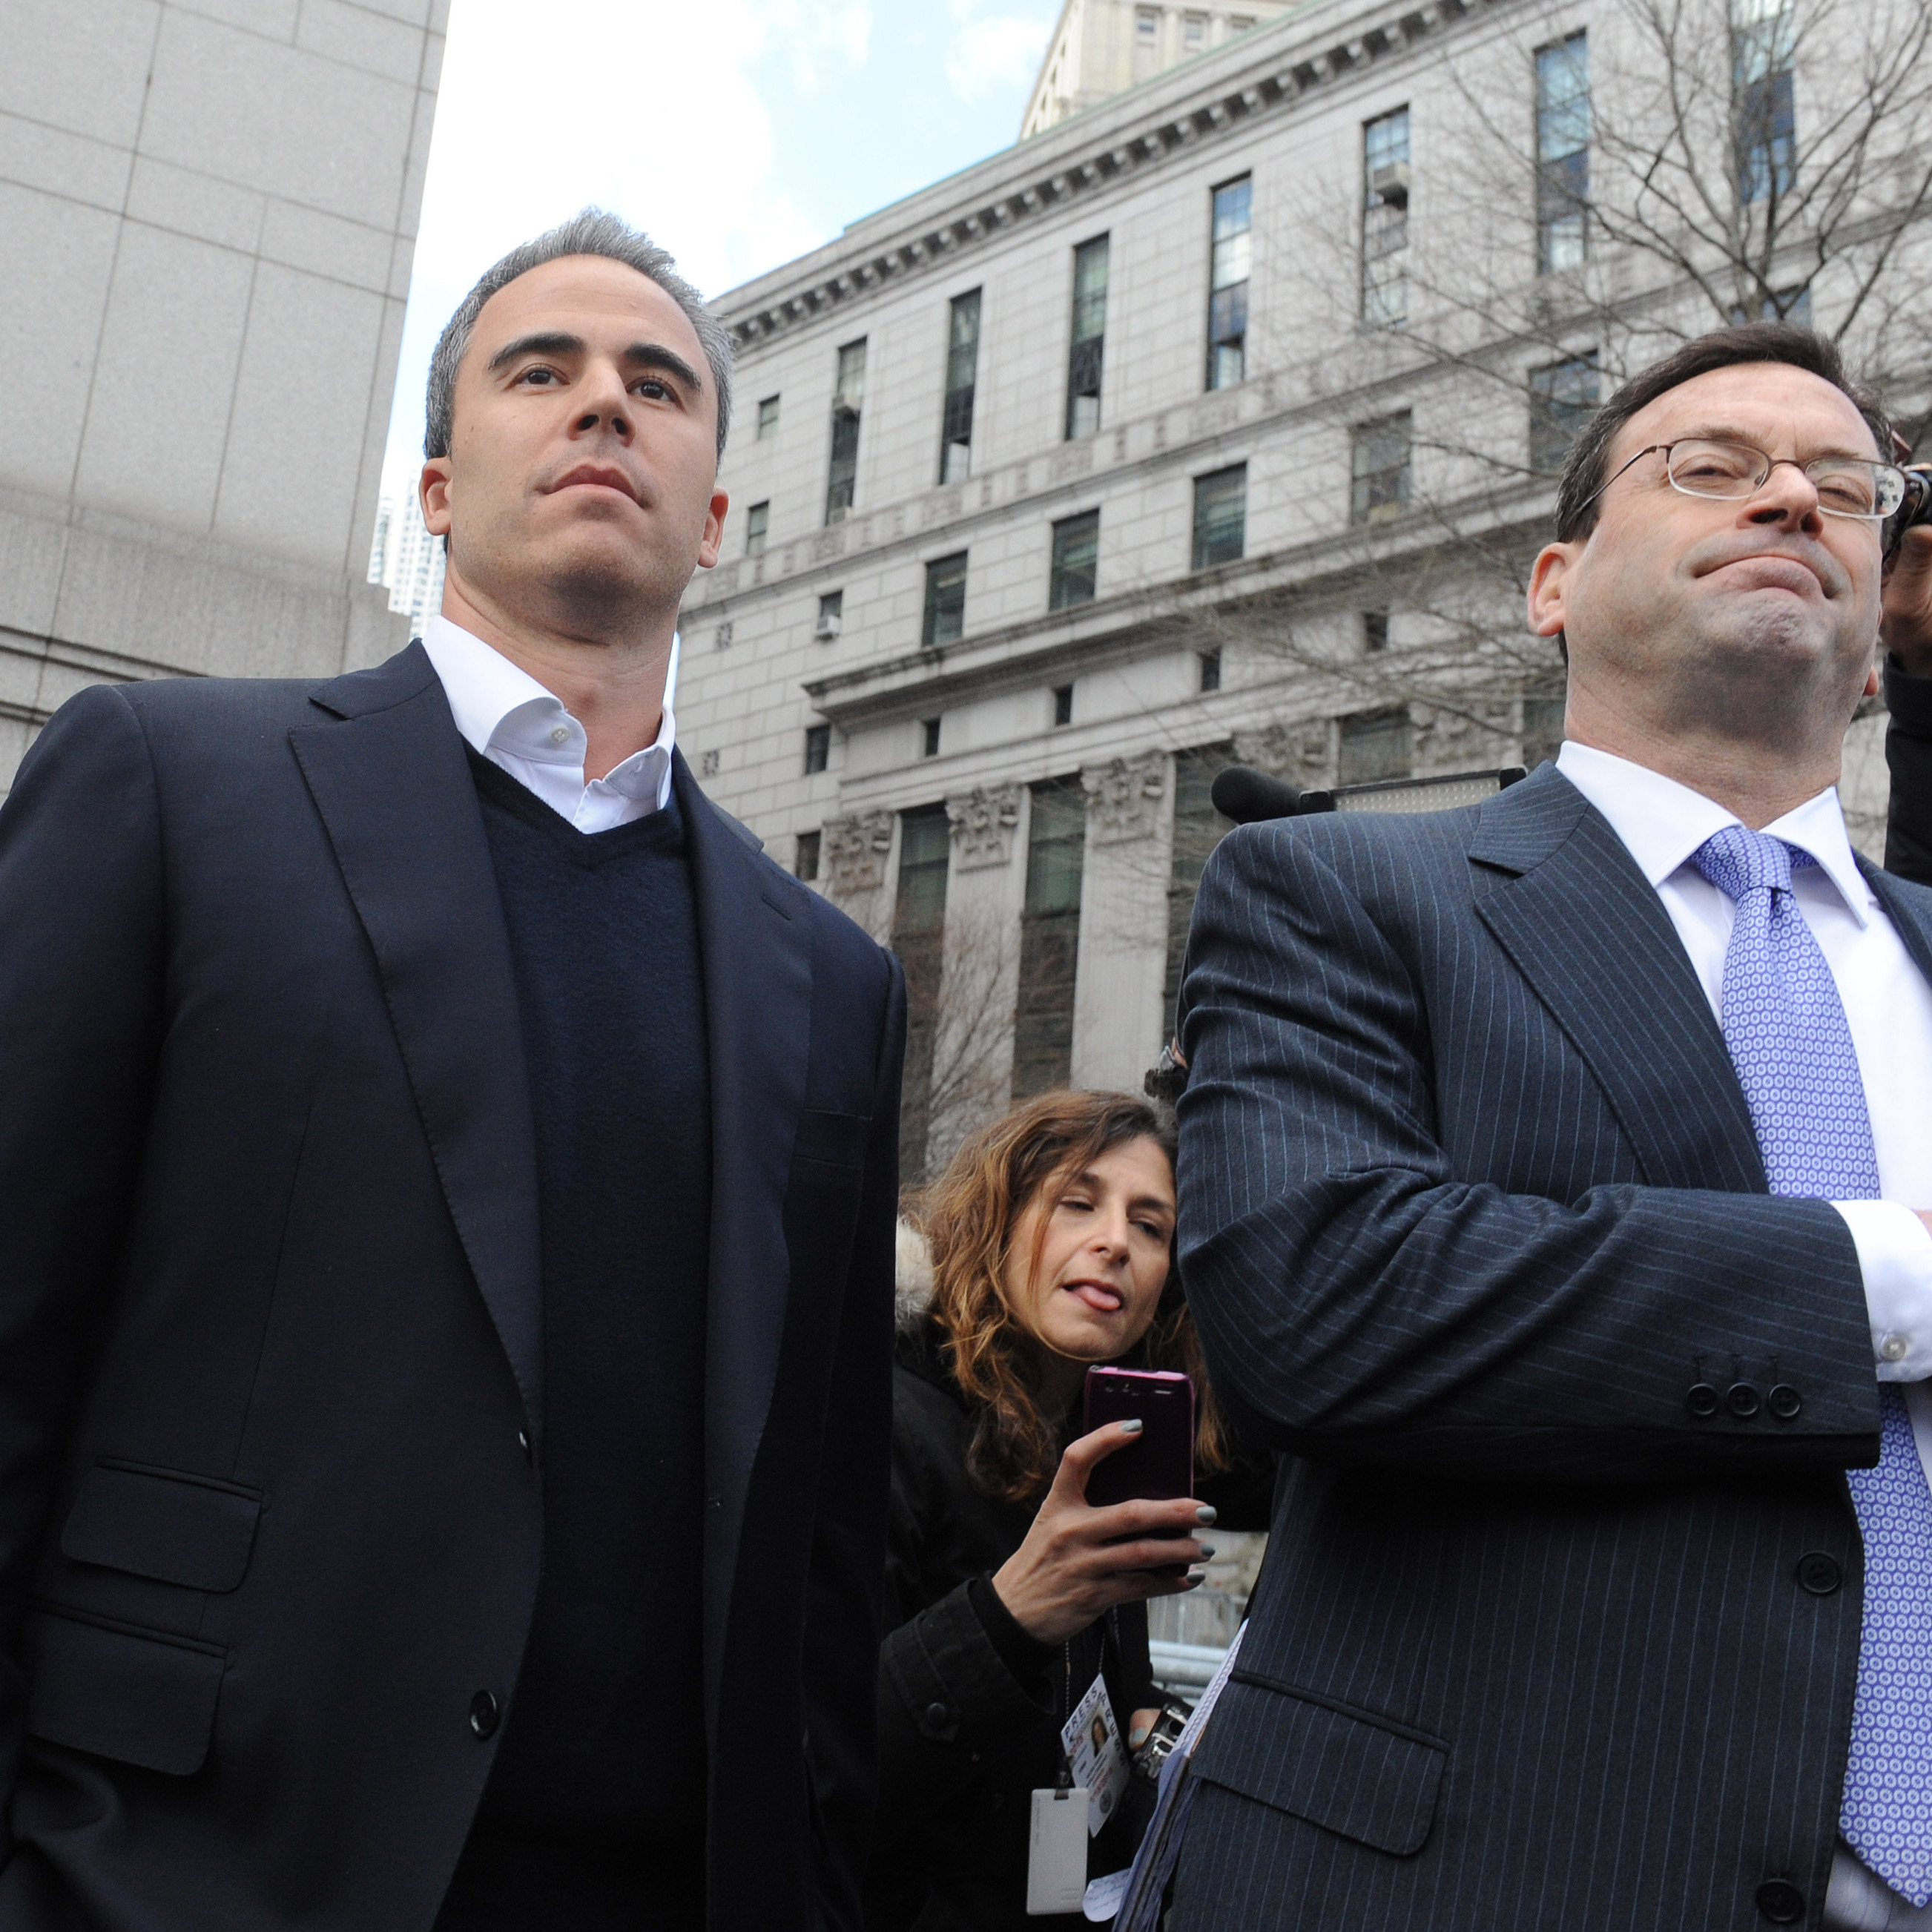 Michael Steinberg (left) exits Manhattan federal court in March after his arrest. Cohen is accused of knowingly allowing Steinberg to make illegal trades.